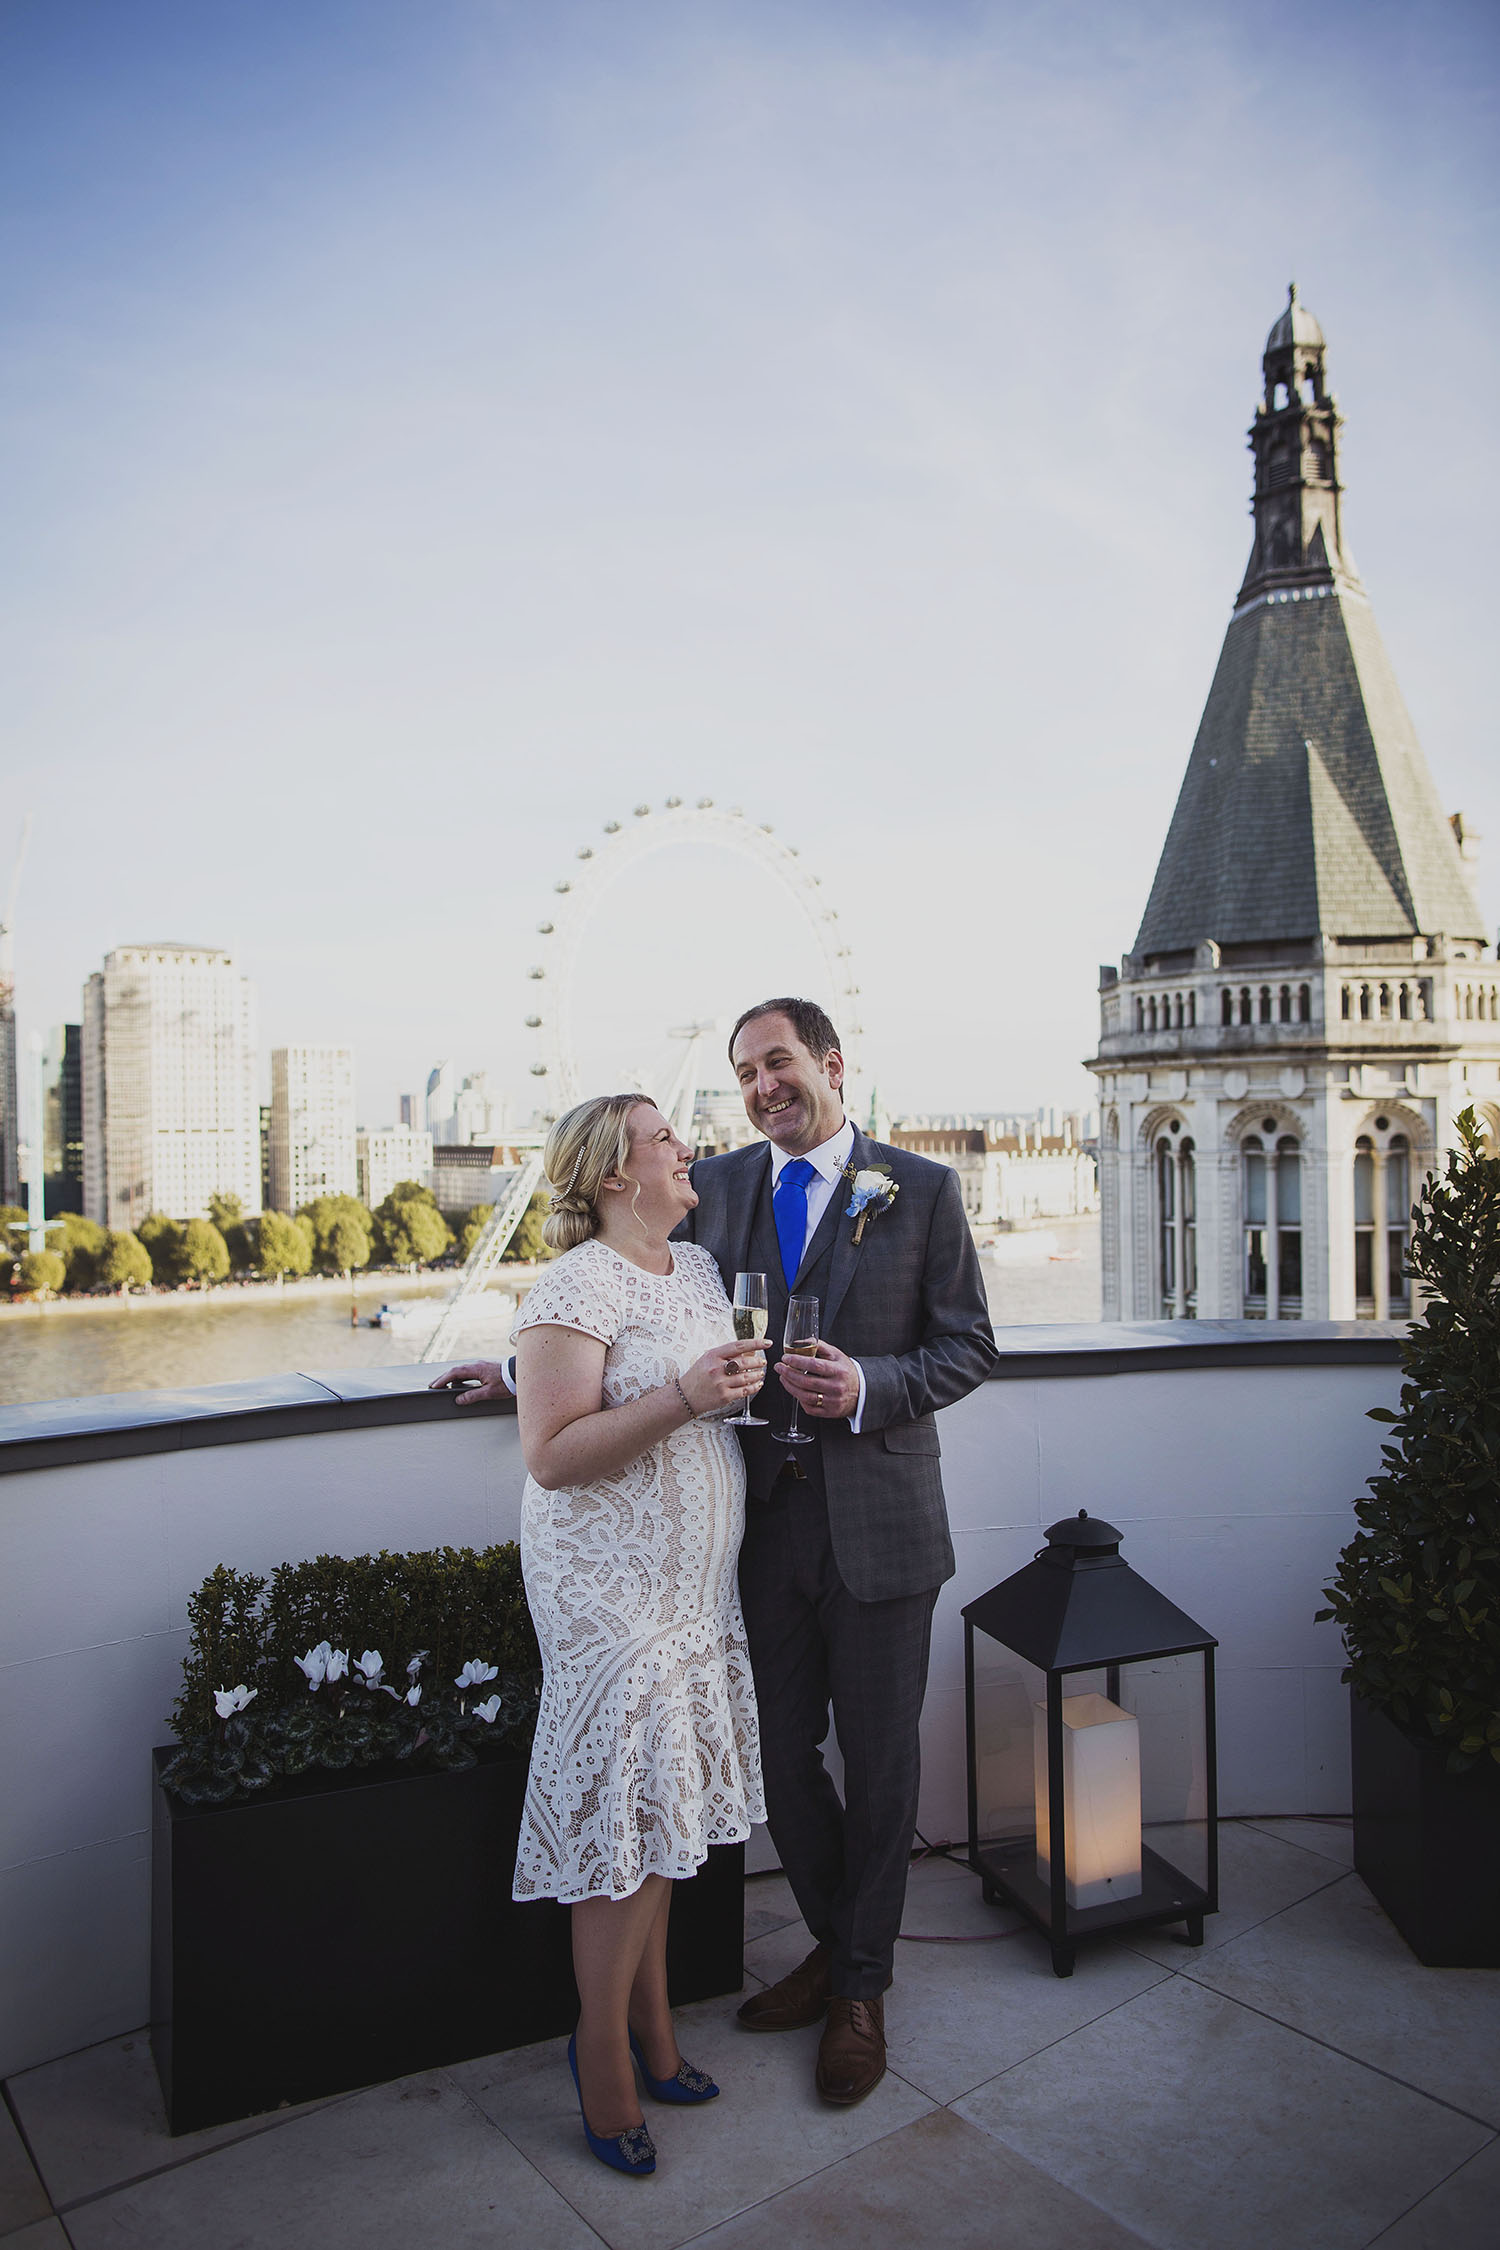 bride and groom portraits royal penthouse suite corinthia hotel london wedding photographer